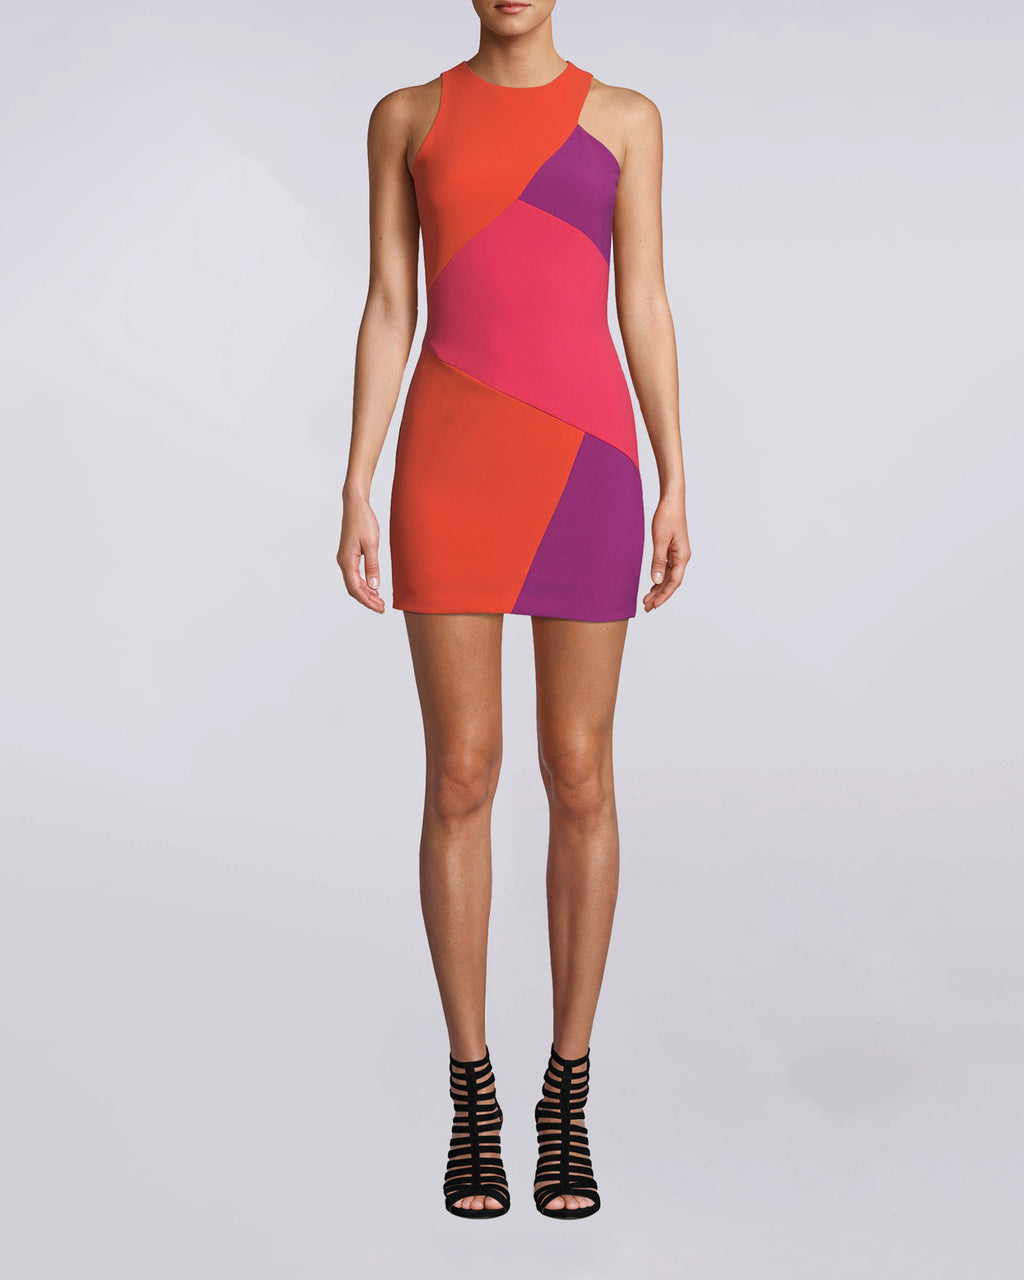 dc302f6c528 BH10464 - Color Block Sleeveless Mini Dress - dresses - short - We color  block the ...